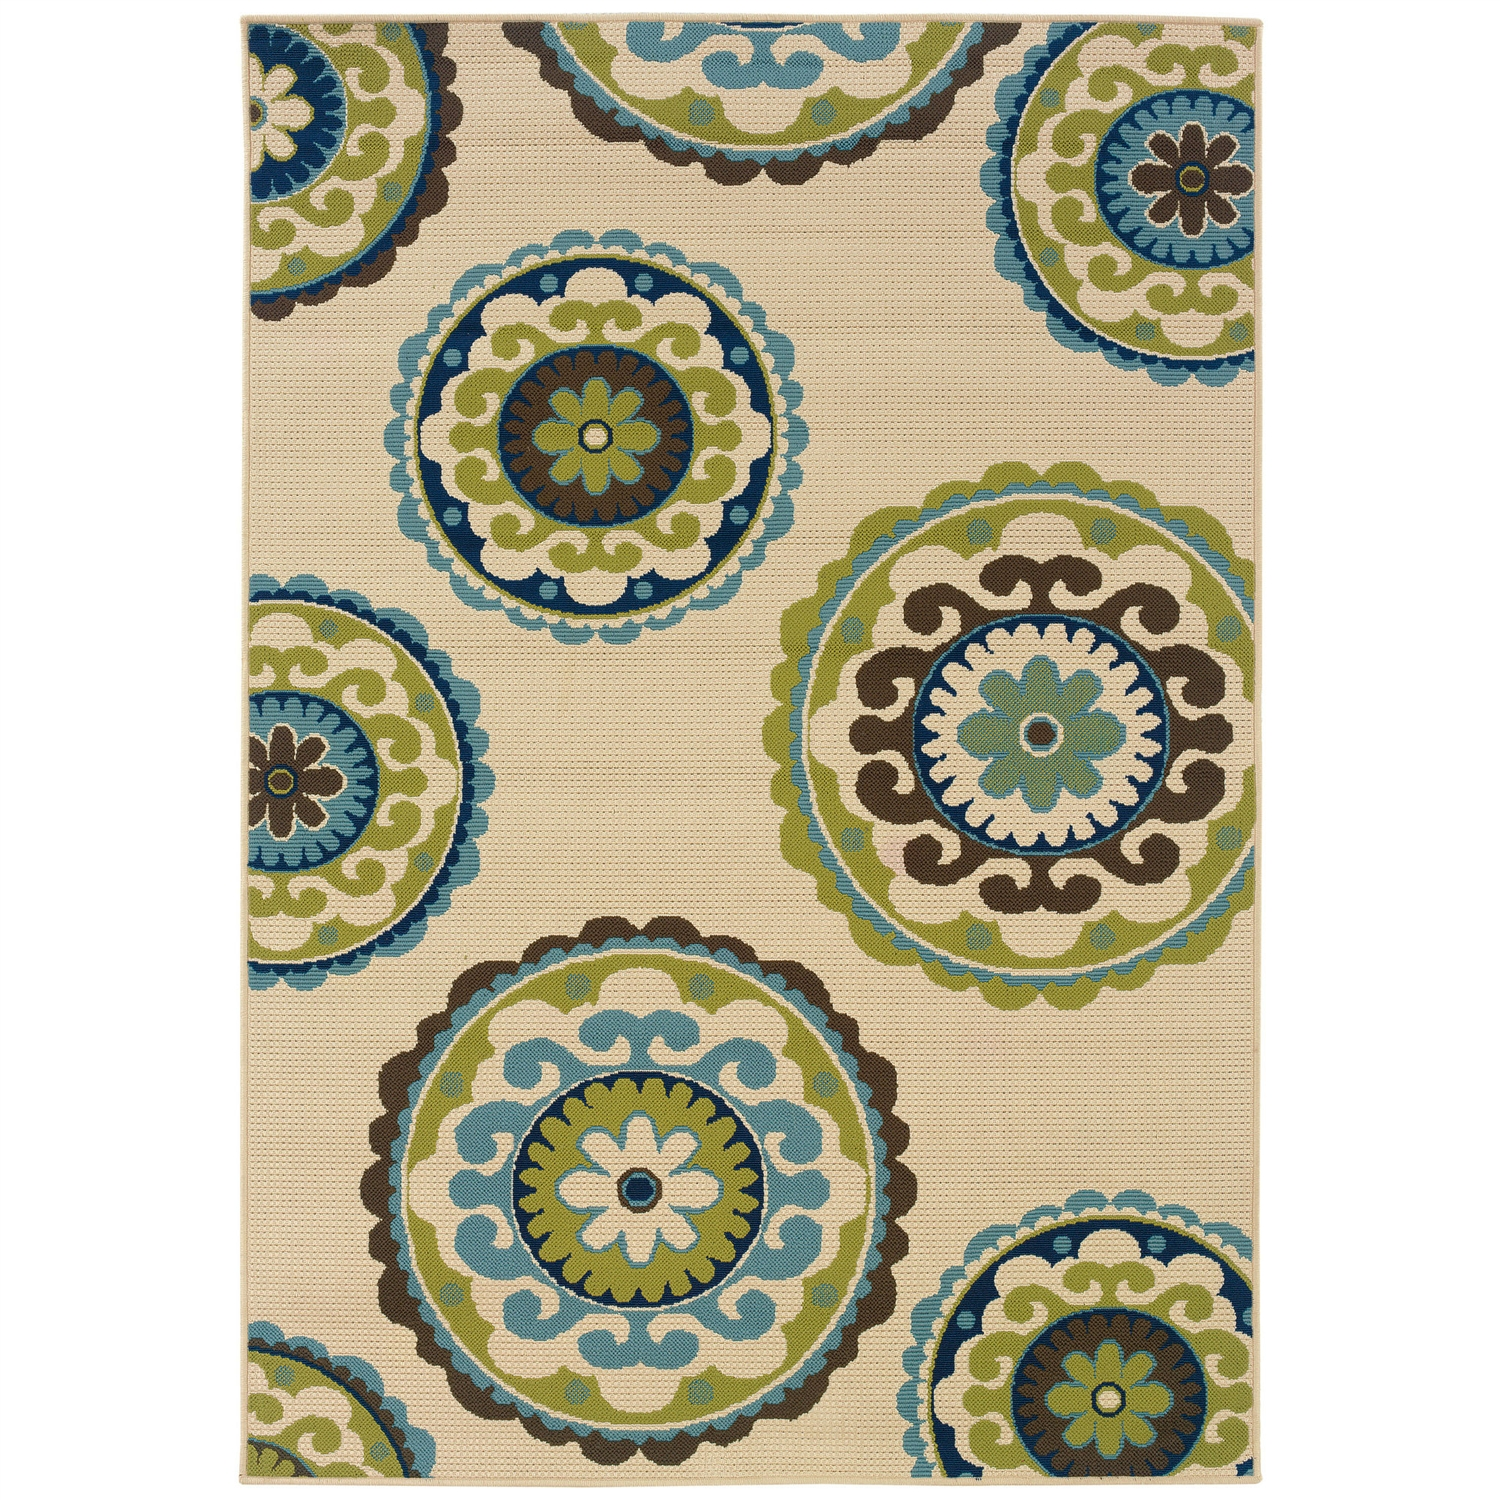 3'7 x 5'6 Outdoor Indoor Area Rug in Ivory Green Blue Brown Circles,  CIG490023 :  This 3'7 x 5'6 Outdoor Indoor Area Rug in Ivory Green Blue Brown Circles would be a great addition to your home. It is made by a woven technique and is made of 100% polypropylene material. Ideal for any modern setting, the Rug has a lively and vibrant floral design spread over it. Being water repellent and mildew resistant, this versatile rug can be used indoors as well as outdoors. So it can placed in your living room, bedroom, kitchen area, on your terrace under the wicker table or simply outside on your patio. Thanks to its 100% polypropylene material, this ivory/green carpet from the Caspian collection is sure to stay in the family for years. A machine construction also adds to the durability of this rug. Plus, it is stain and fade resistant, so the rug looks new for long. Thus it can be said that, this woven rug is extremely luxurious and reliable. Remember to use this whimsical Rug with a backing pad to avoid any accidental slips or falls. Using a rug pad also improves the life of your rug and protects your flooring. Vacuum cleaning this ivory/green rug at regular intervals helps it look new and lush at all times. In case your rug appears heavily soiled, getting it professional cleaned is essential. Available in different shapes and sizes, this beautiful rug can easily meet all your styling requirements. Technique: Machine woven; Primary Pattern: Floral and plants; Oriental; Primary Color: Ivory; White; Material: Synthetic; Country of Manufacture: Egypt.